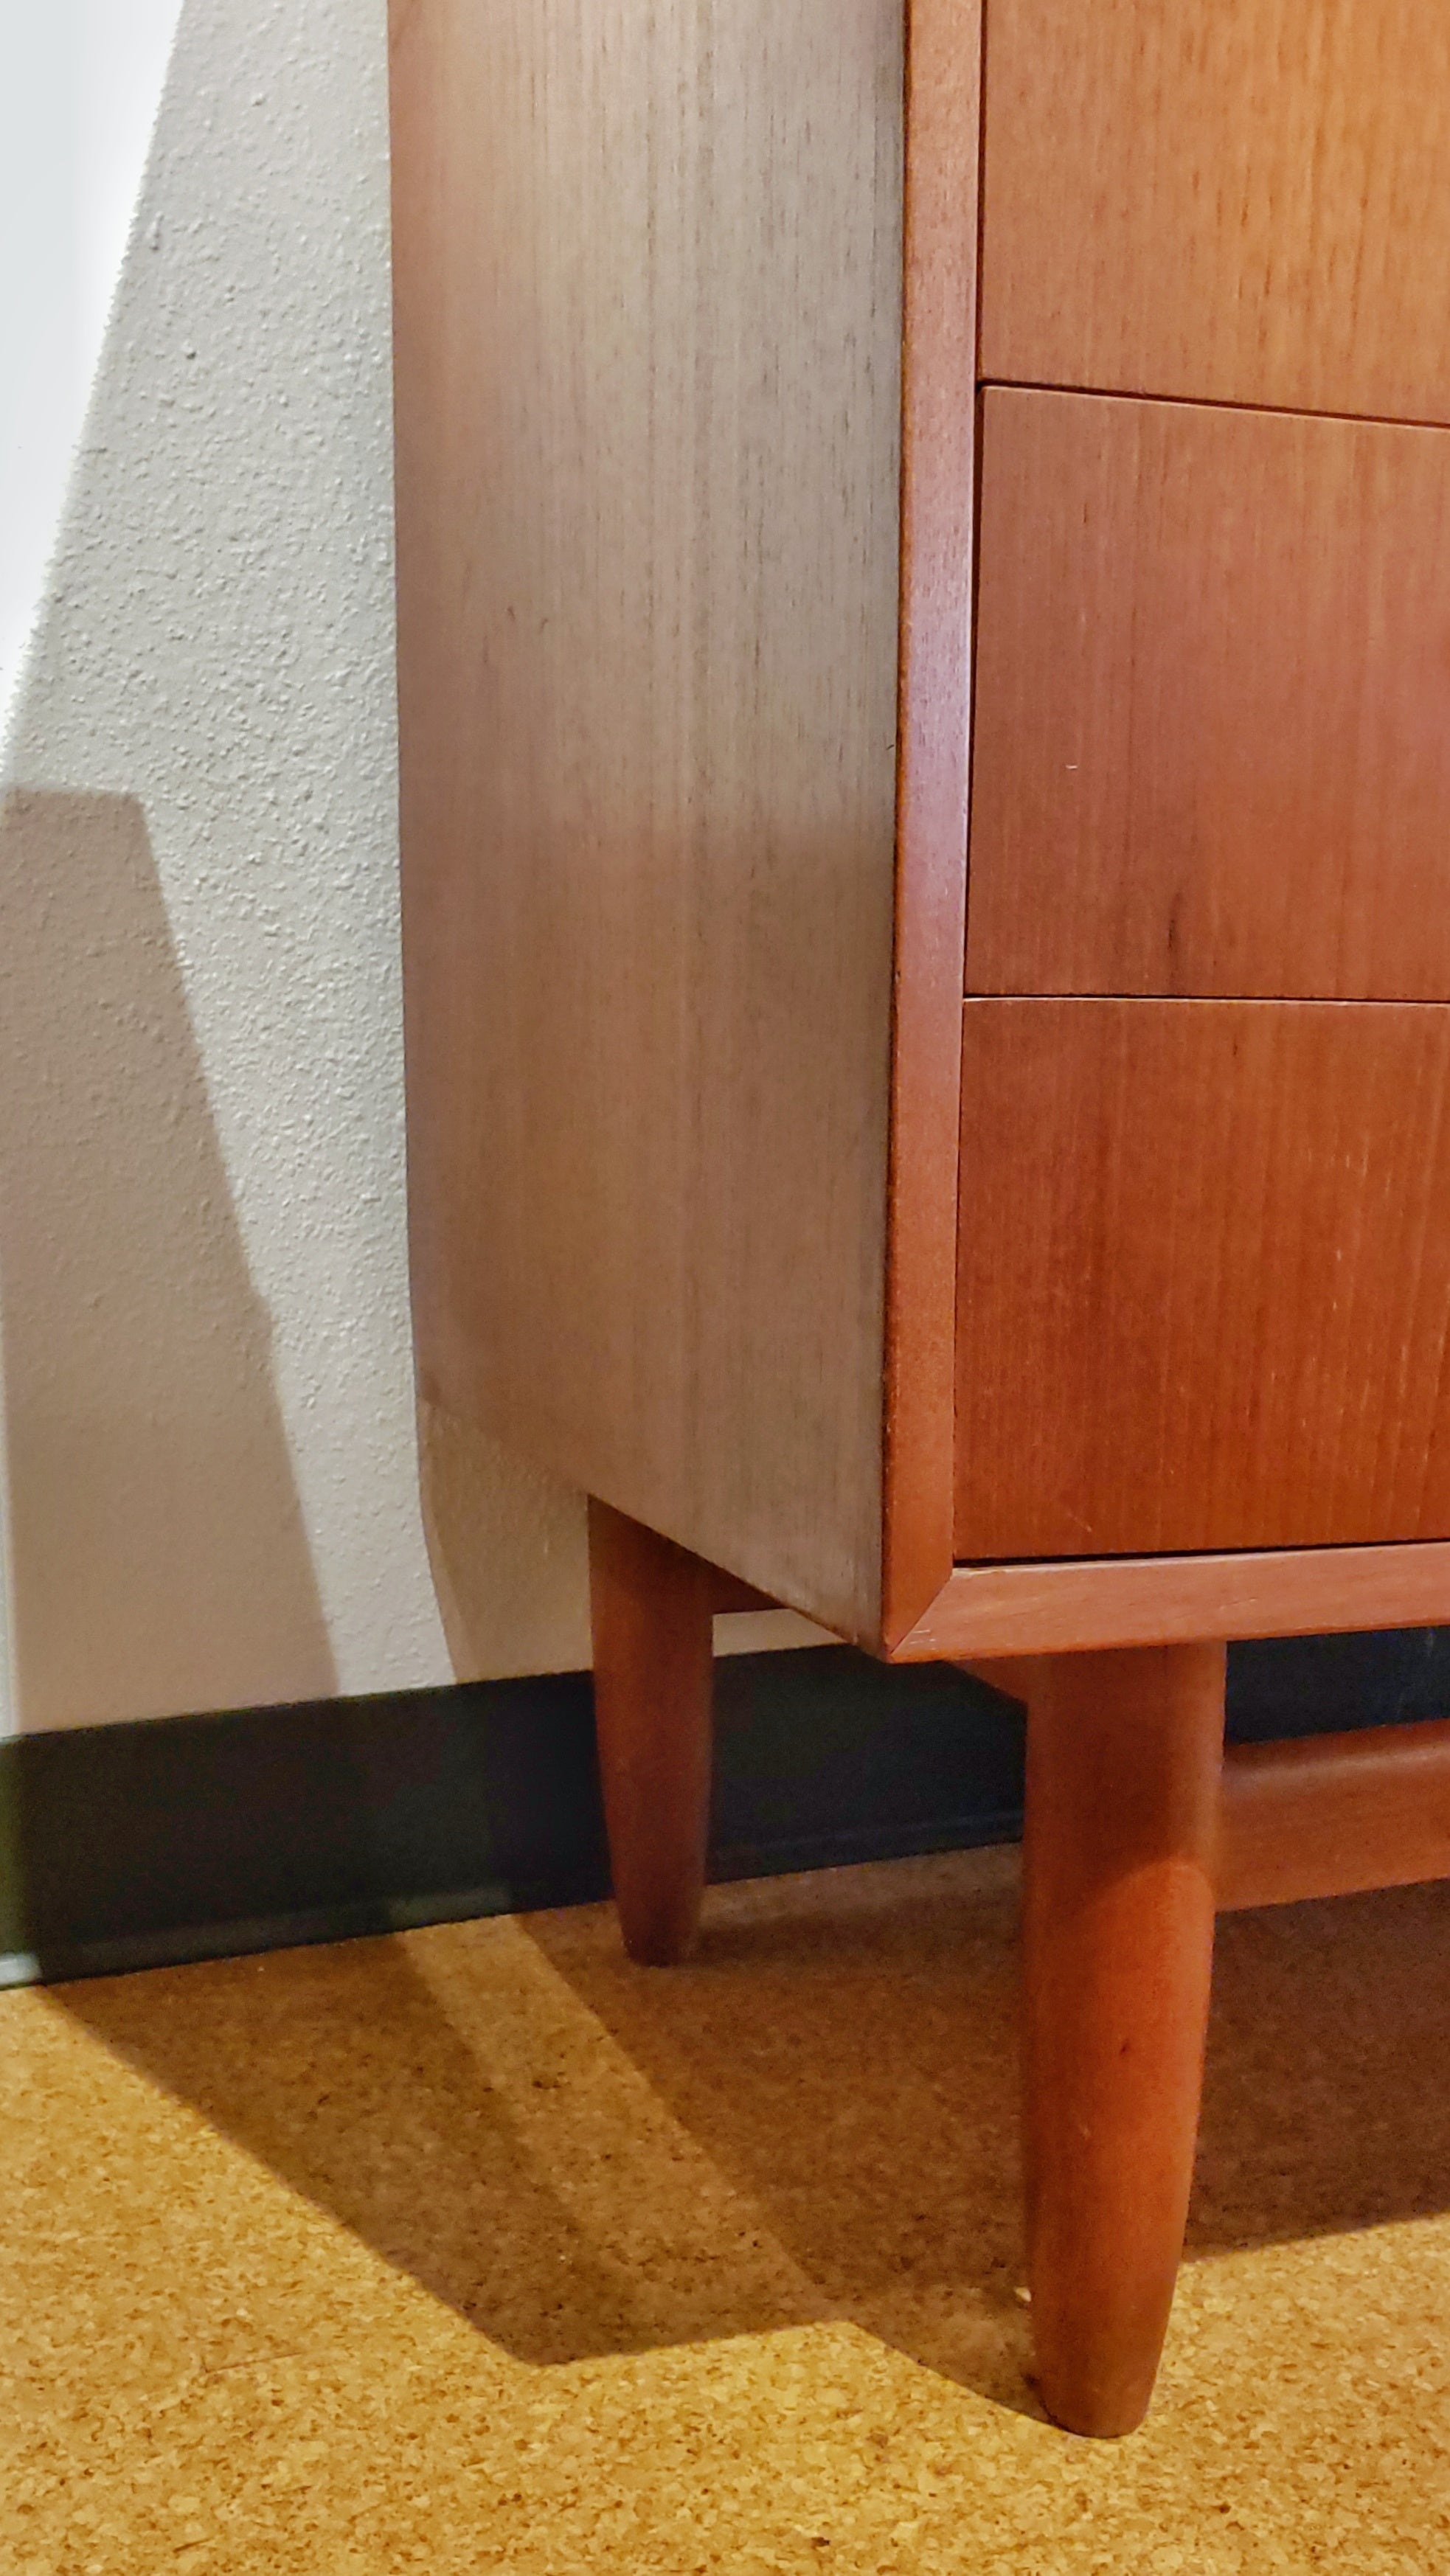 BOW-FRONT CHEST OF DRAWERS